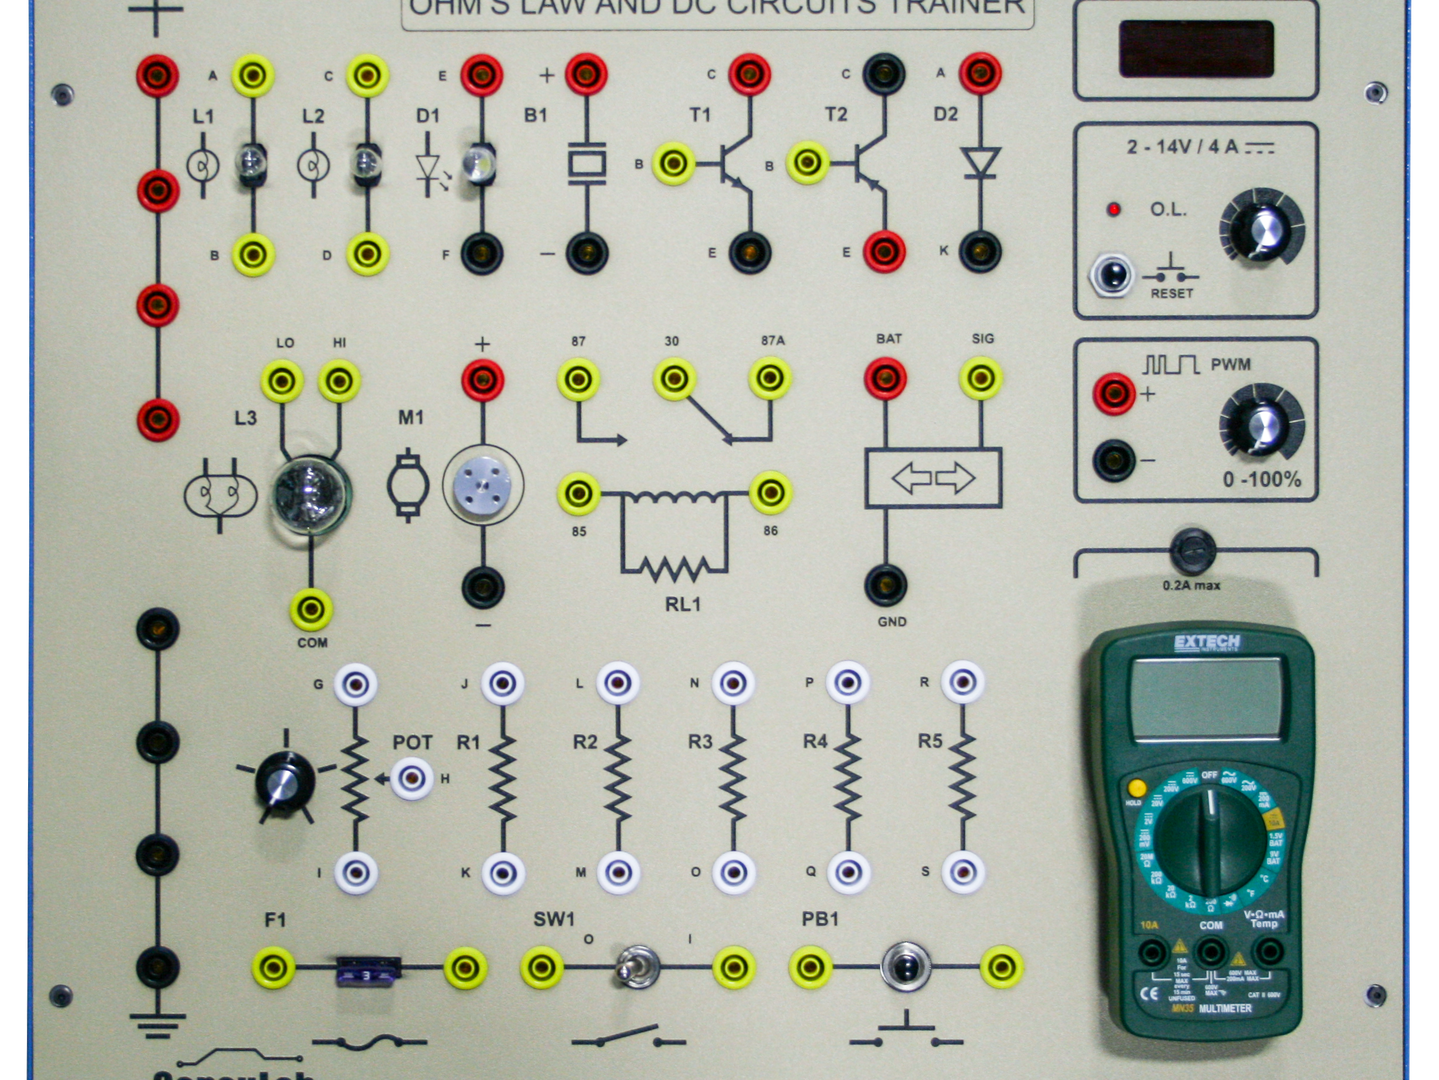 cl-1919-05_sep15 control panel.png